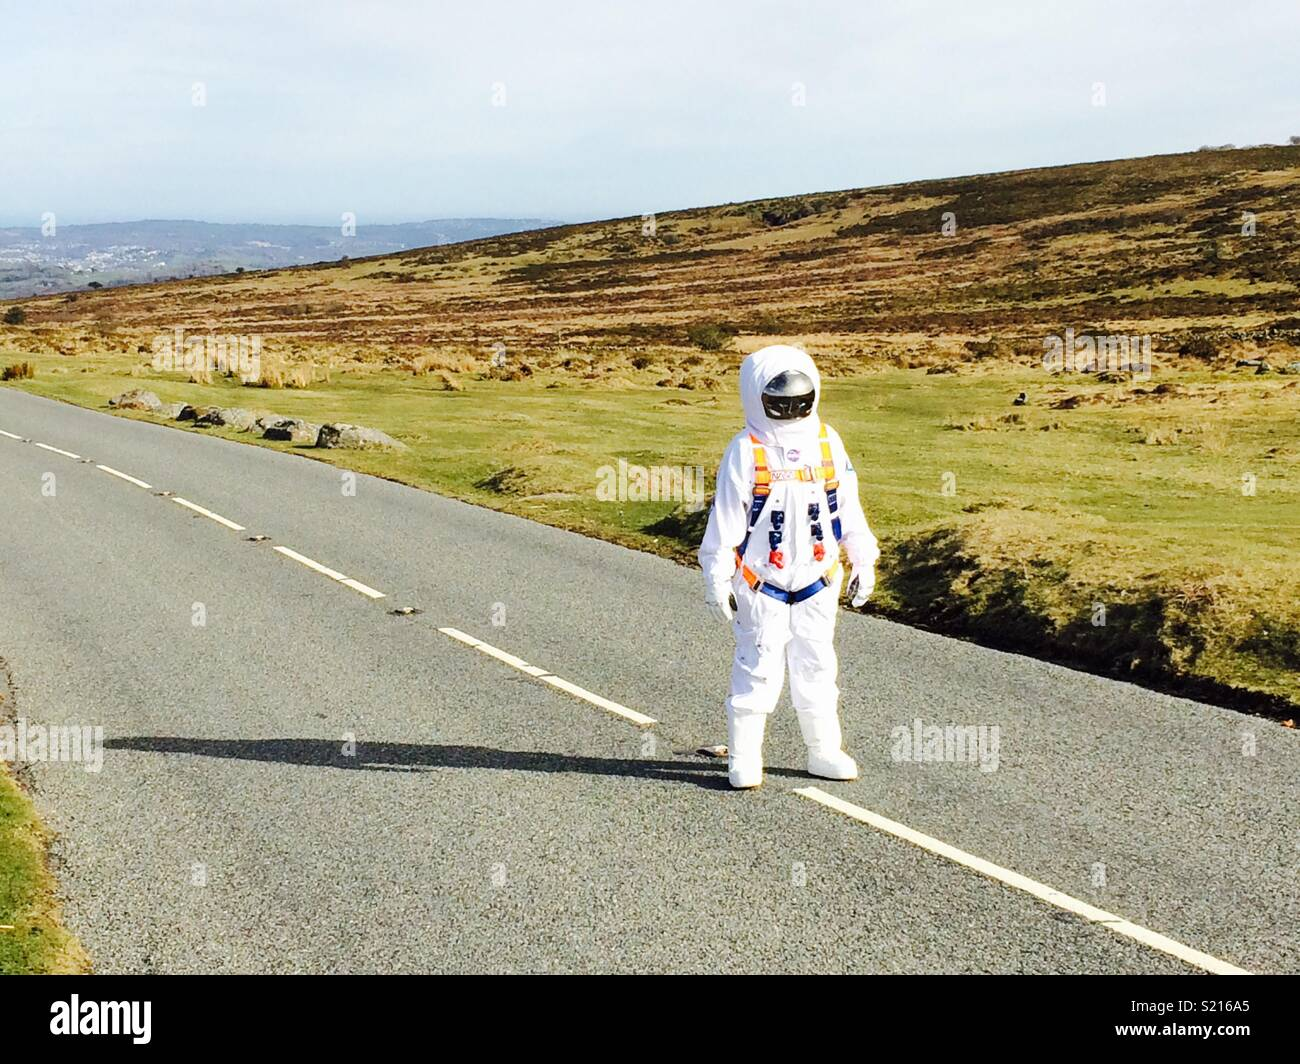 Astronaut in the road - Stock Image